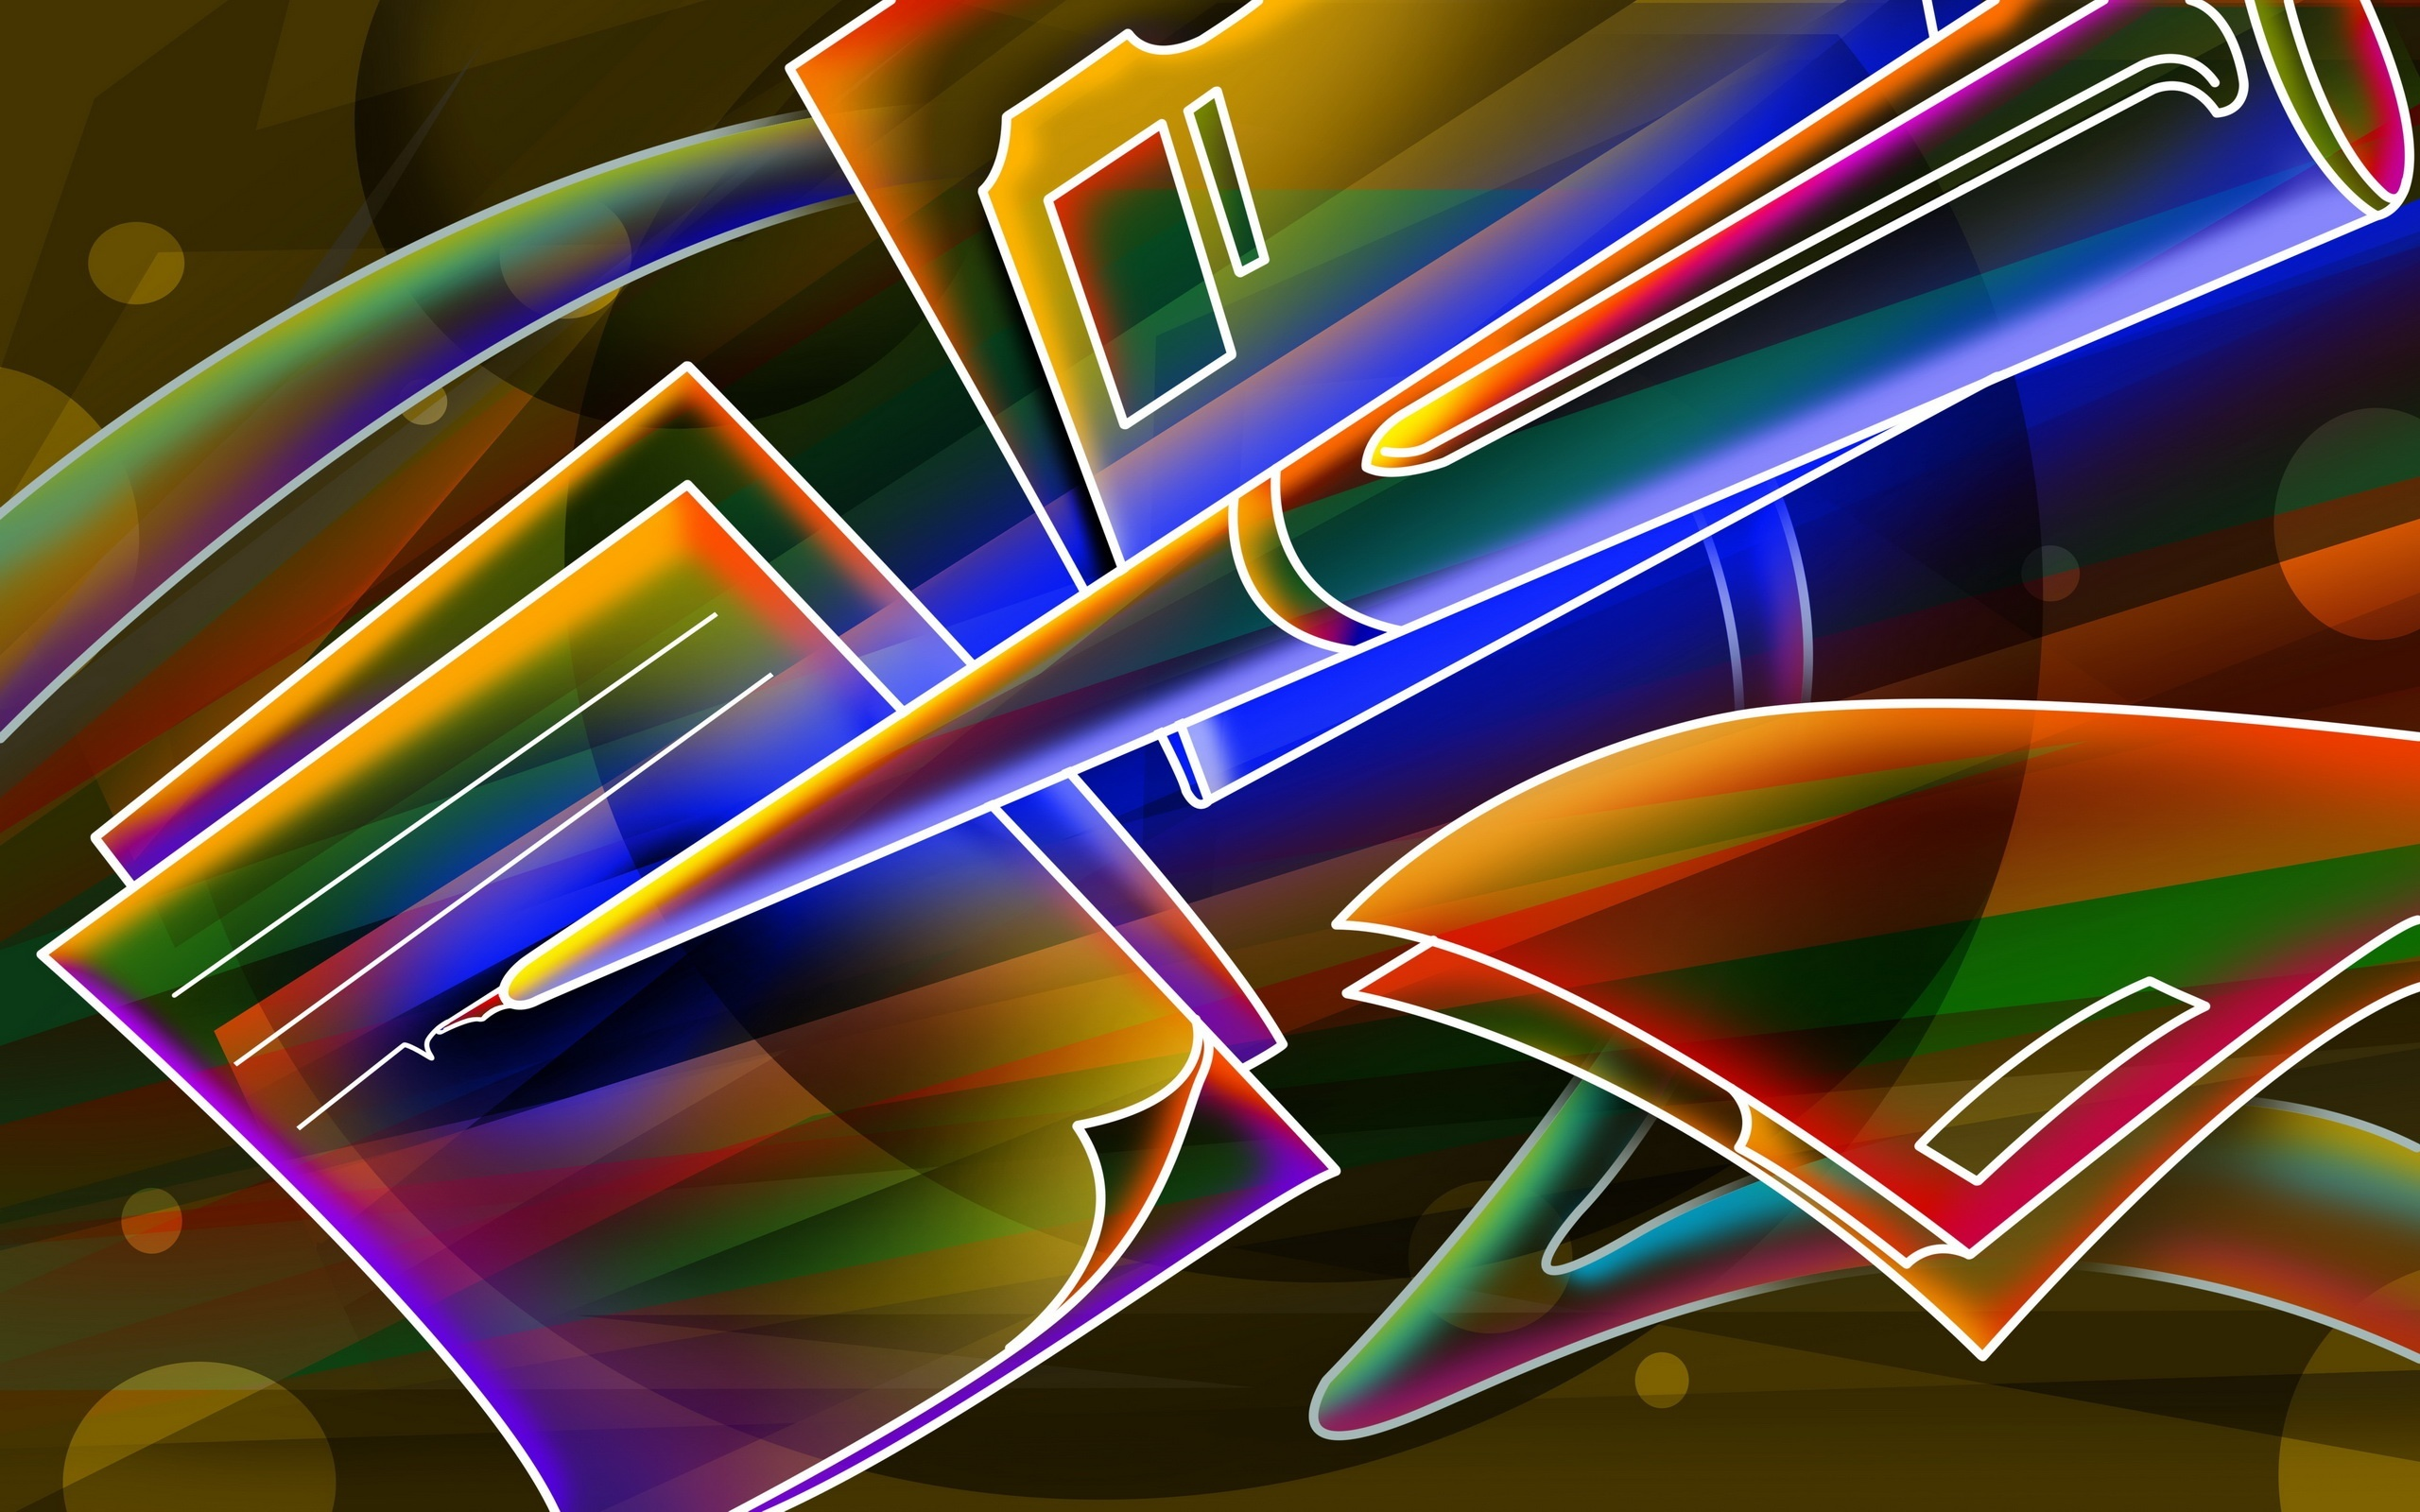 Neon Hd Wallpaper Background Image 2560x1600 Id 117387 Wallpaper Abyss